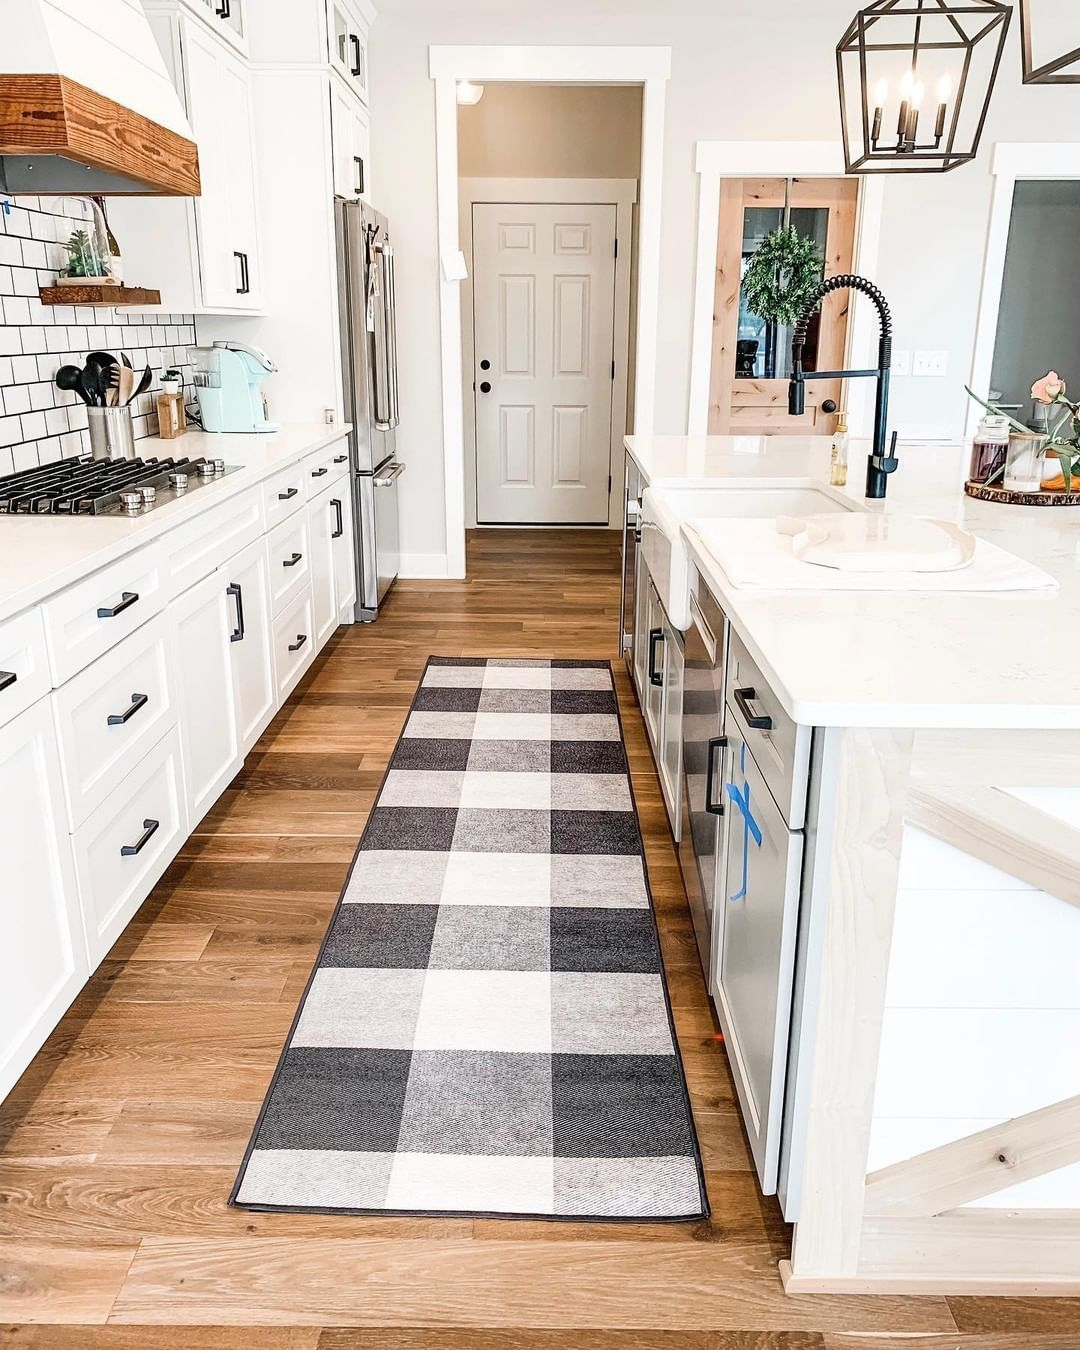 Ruggable On Instagram Sierra Farmhouse Spices Up Her Kitchen With The Buffalo Plaid Black Runne White Kitchen Decor Black White Rug White Farmhouse Kitchens